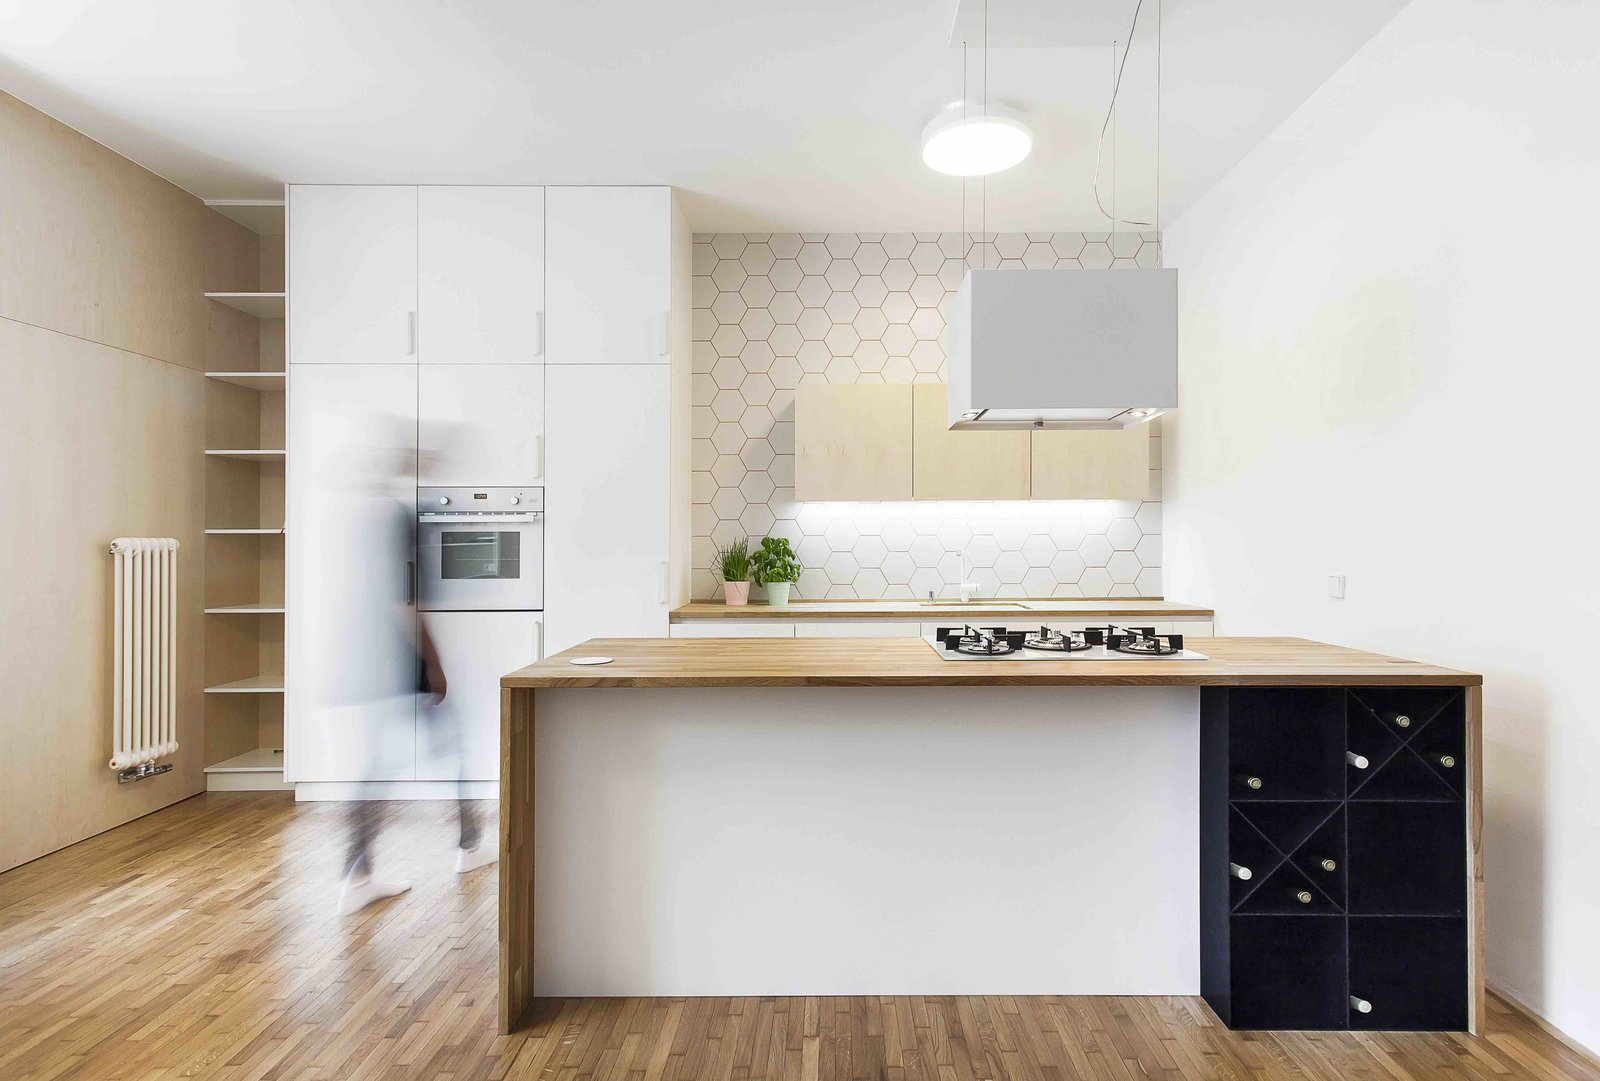 Kitchen, White Cabinet, Medium Hardwood Floor, Wood Counter, Range, Ceiling Lighting, Range Hood, Wall Oven, Ceramic Tile Backsplashe, and Undermount Sink  Photo 4 of 13 in A Family Apartment in Prague That's Filled With Clever Storage Solutions and Built-In Nooks